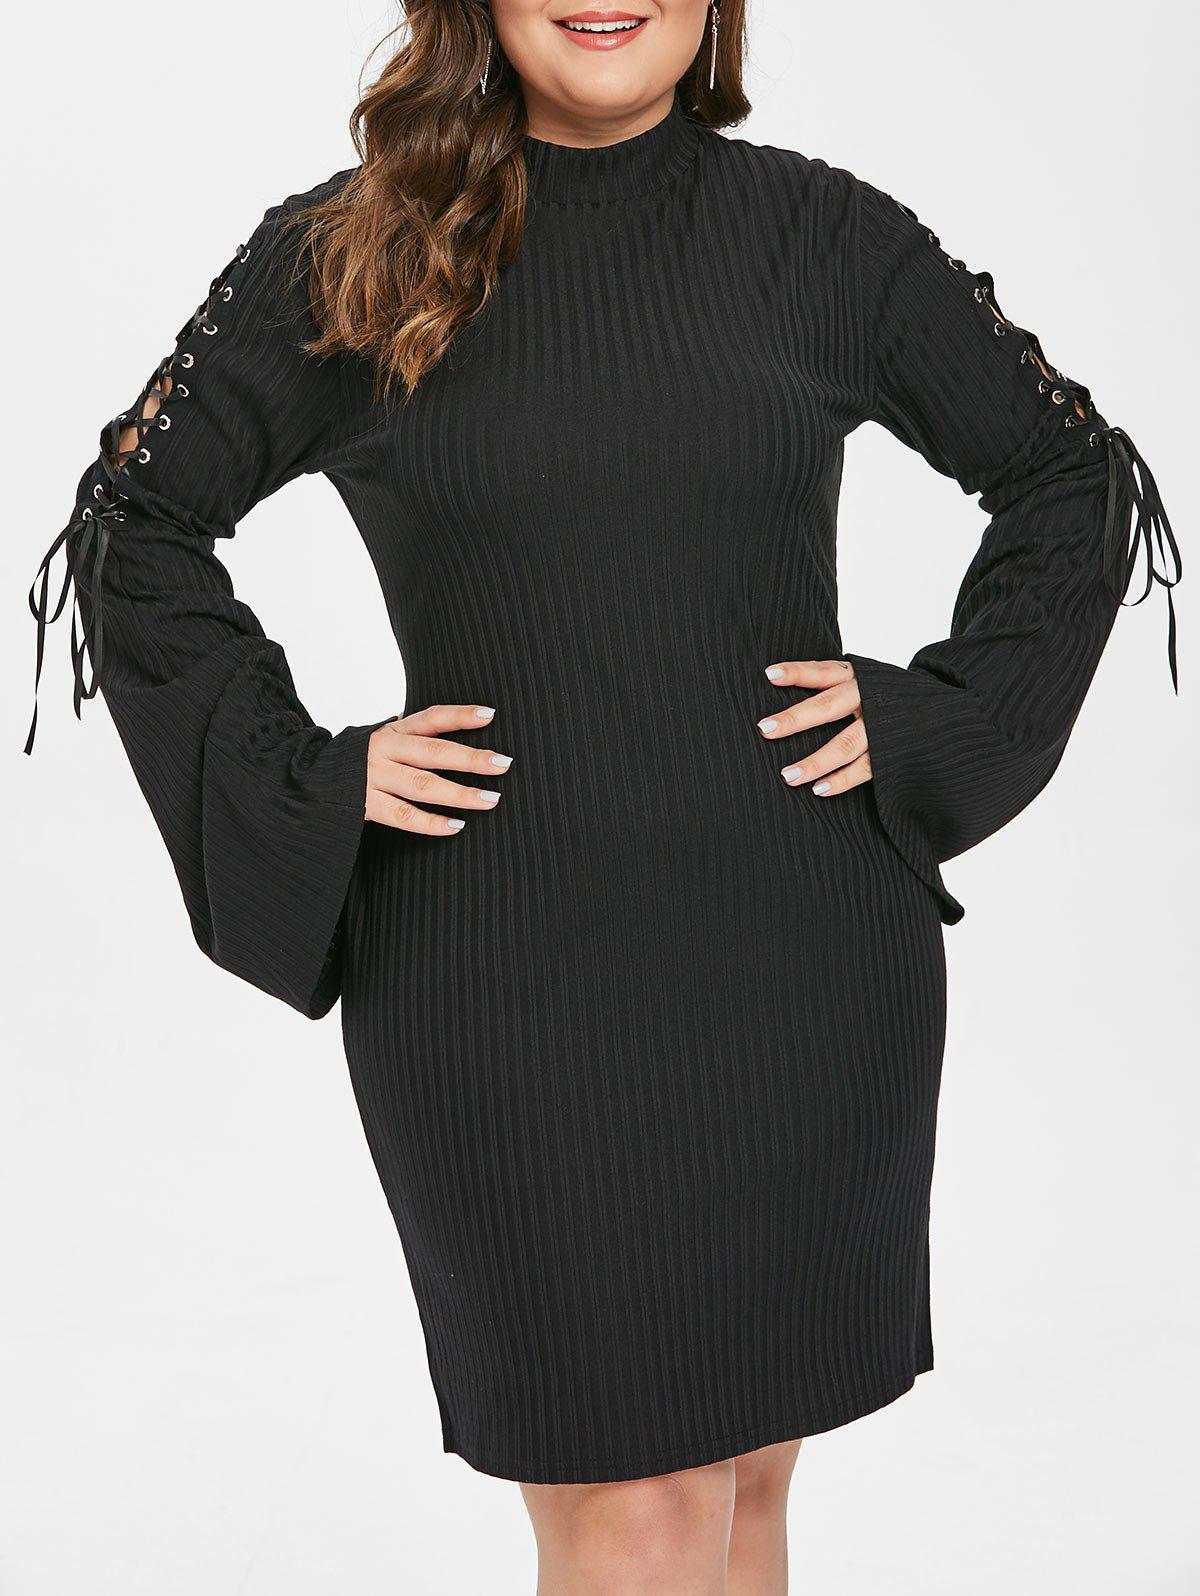 New Plus Size Lace Up Sleeve Bodycon Dress